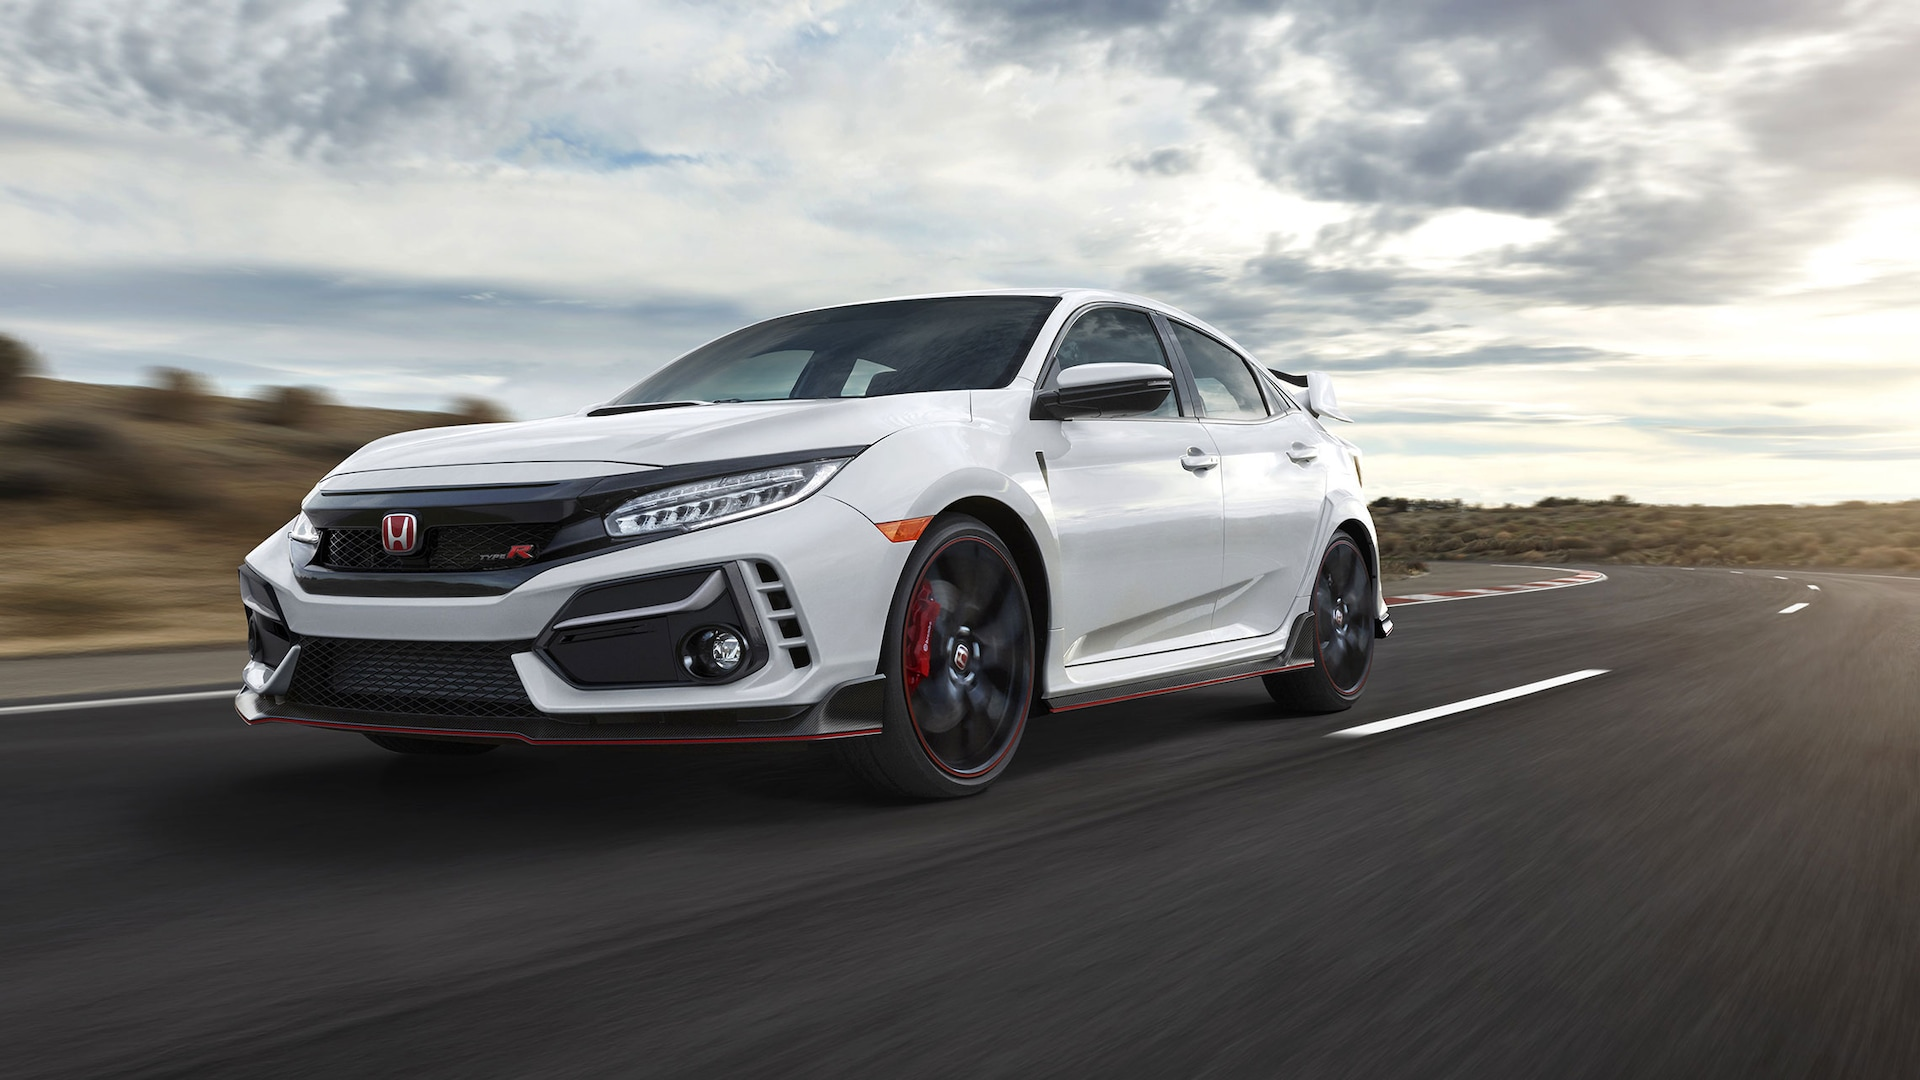 Front driver-side view of the 2021 Honda Civic Type R in Championship White, driving on a racetrack.